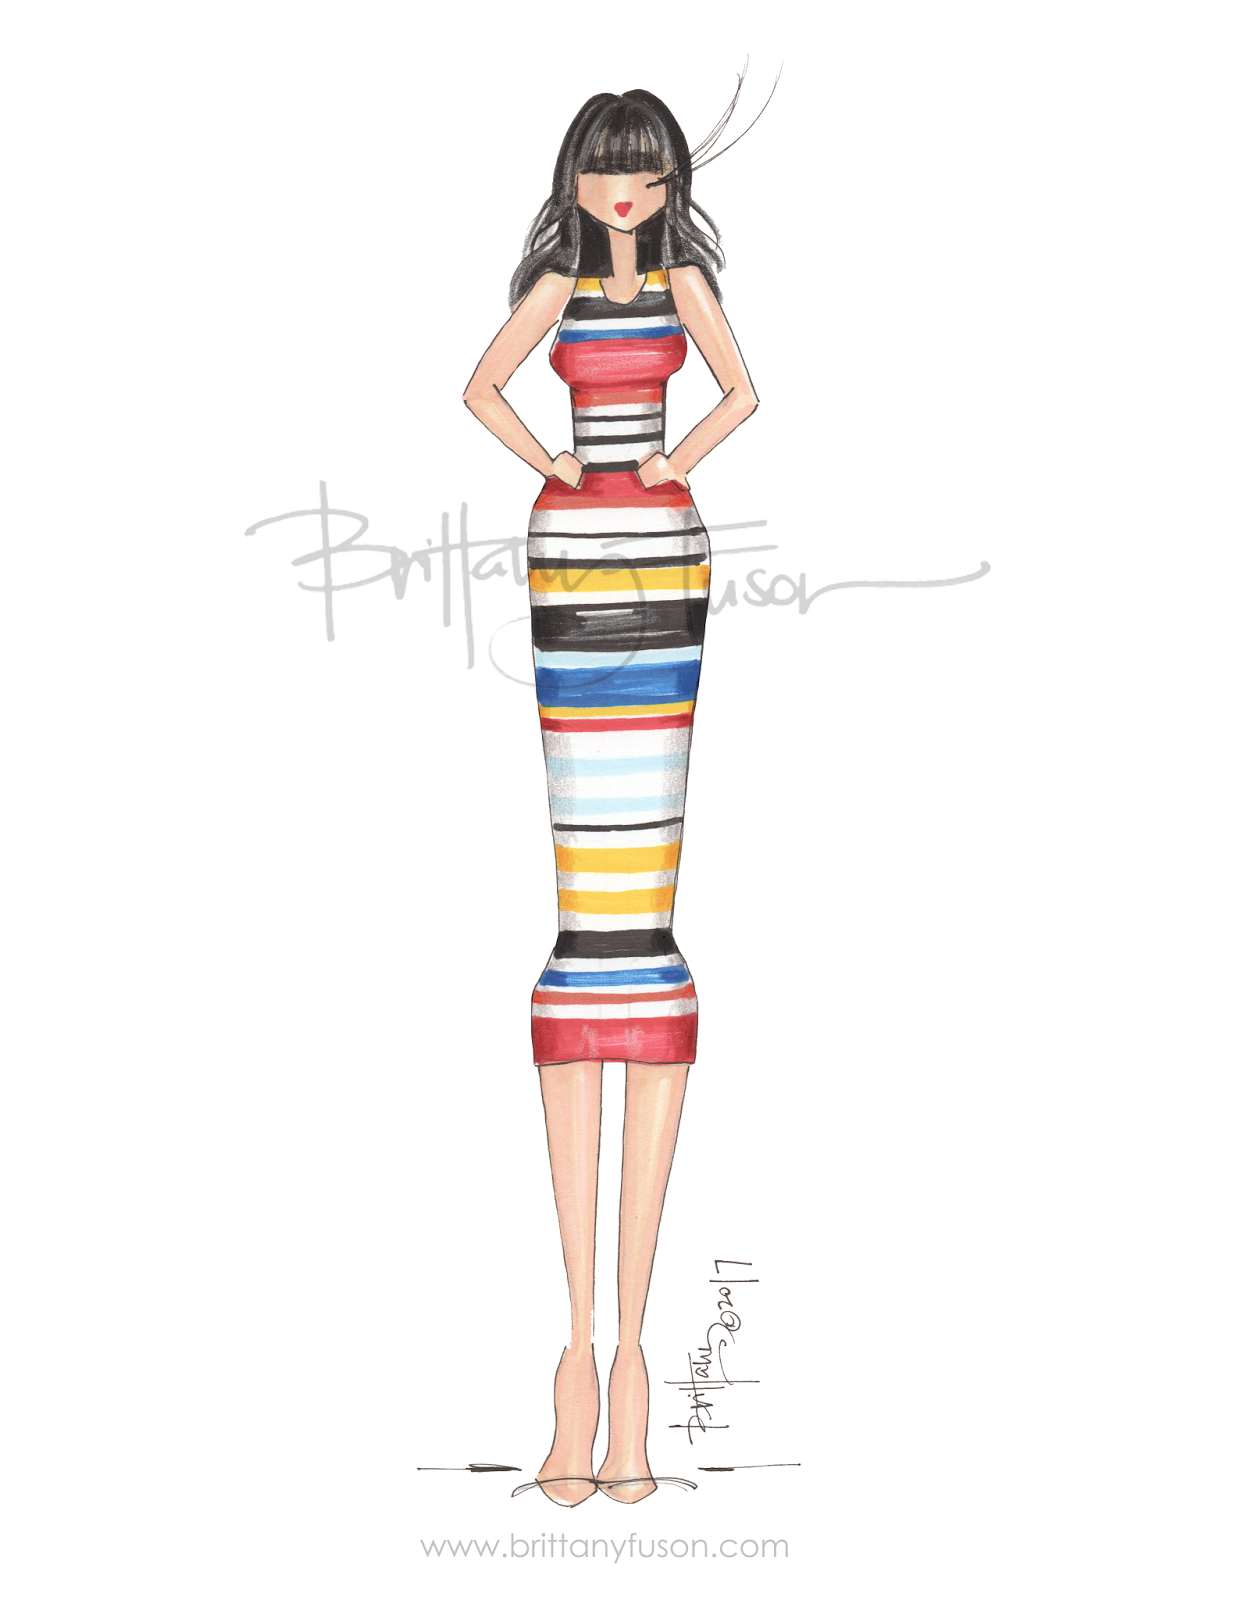 primary colors | fashion illustration | Brittany Fuson| Be Inspirational ❥|Mz. Manerz: Being well dressed is a beautiful form of confidence, happiness & politeness